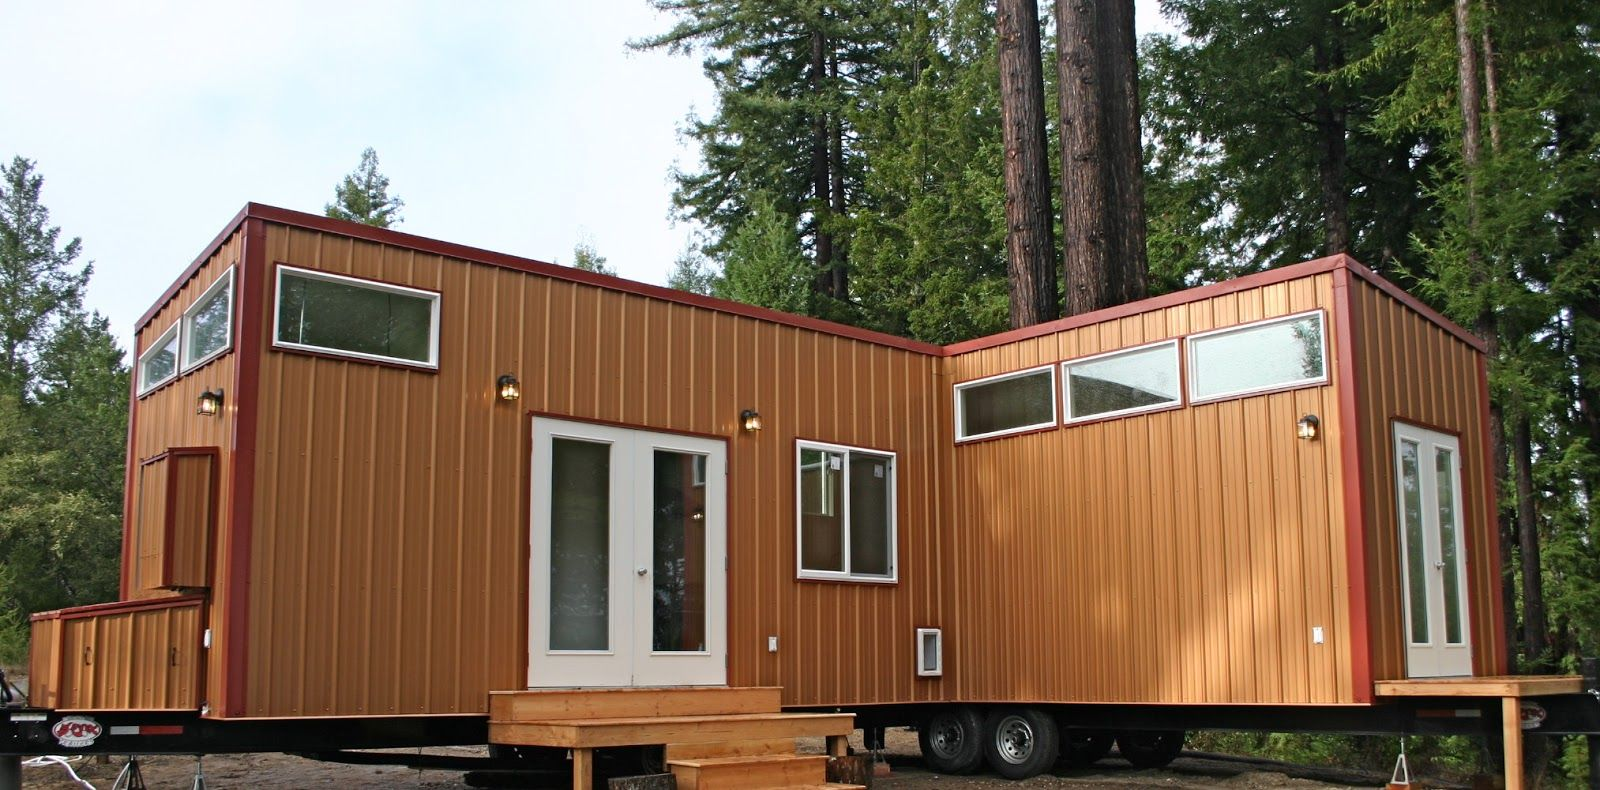 Two Tiny Houses On Wheels Joined Together Tiny House On Wheels Tiny House Big Living House On Wheels